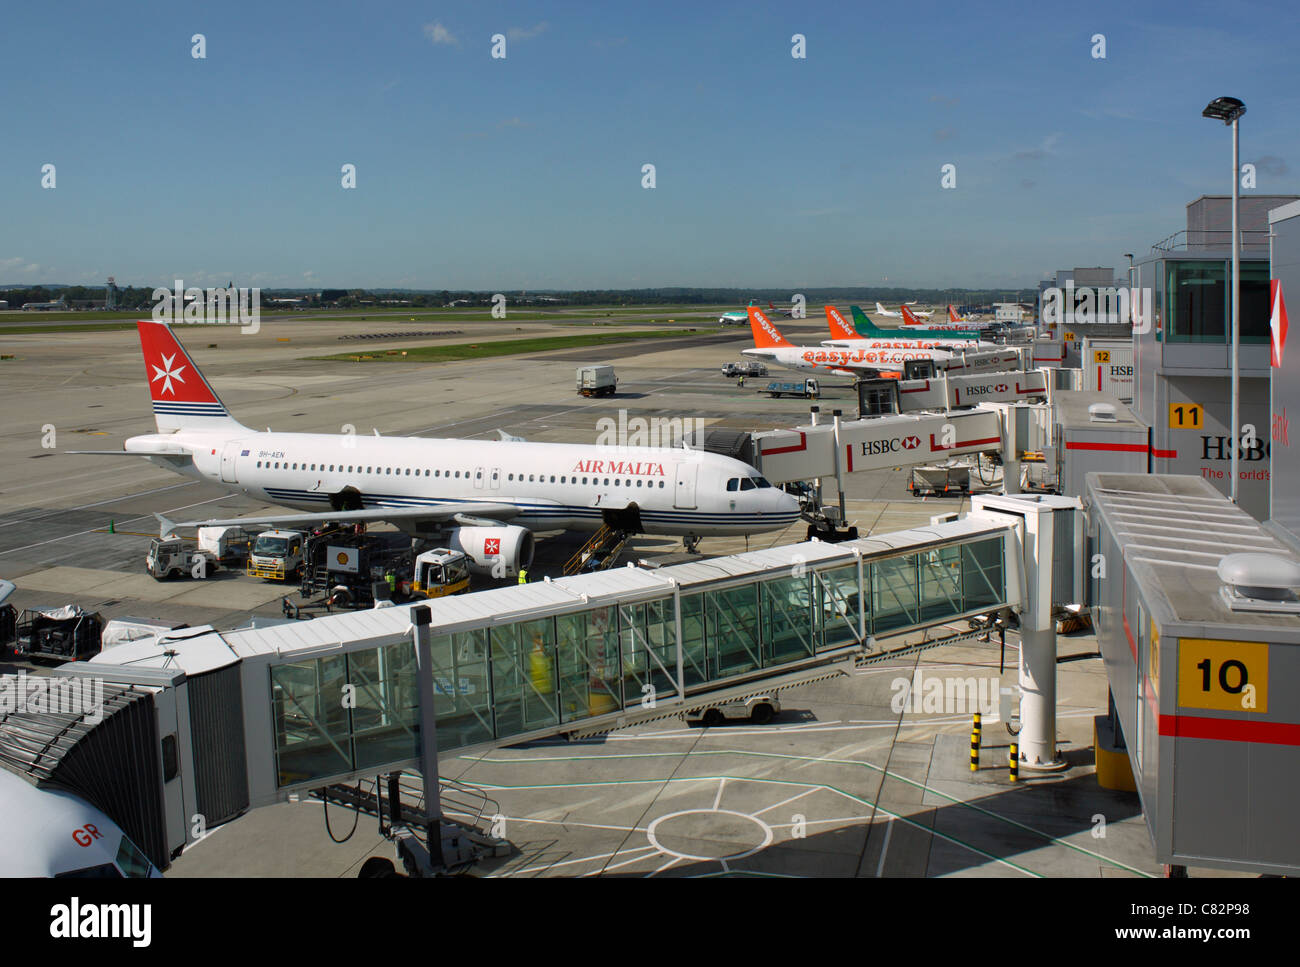 Aircraft on the ramp at Gatwick Airport - Stock Image